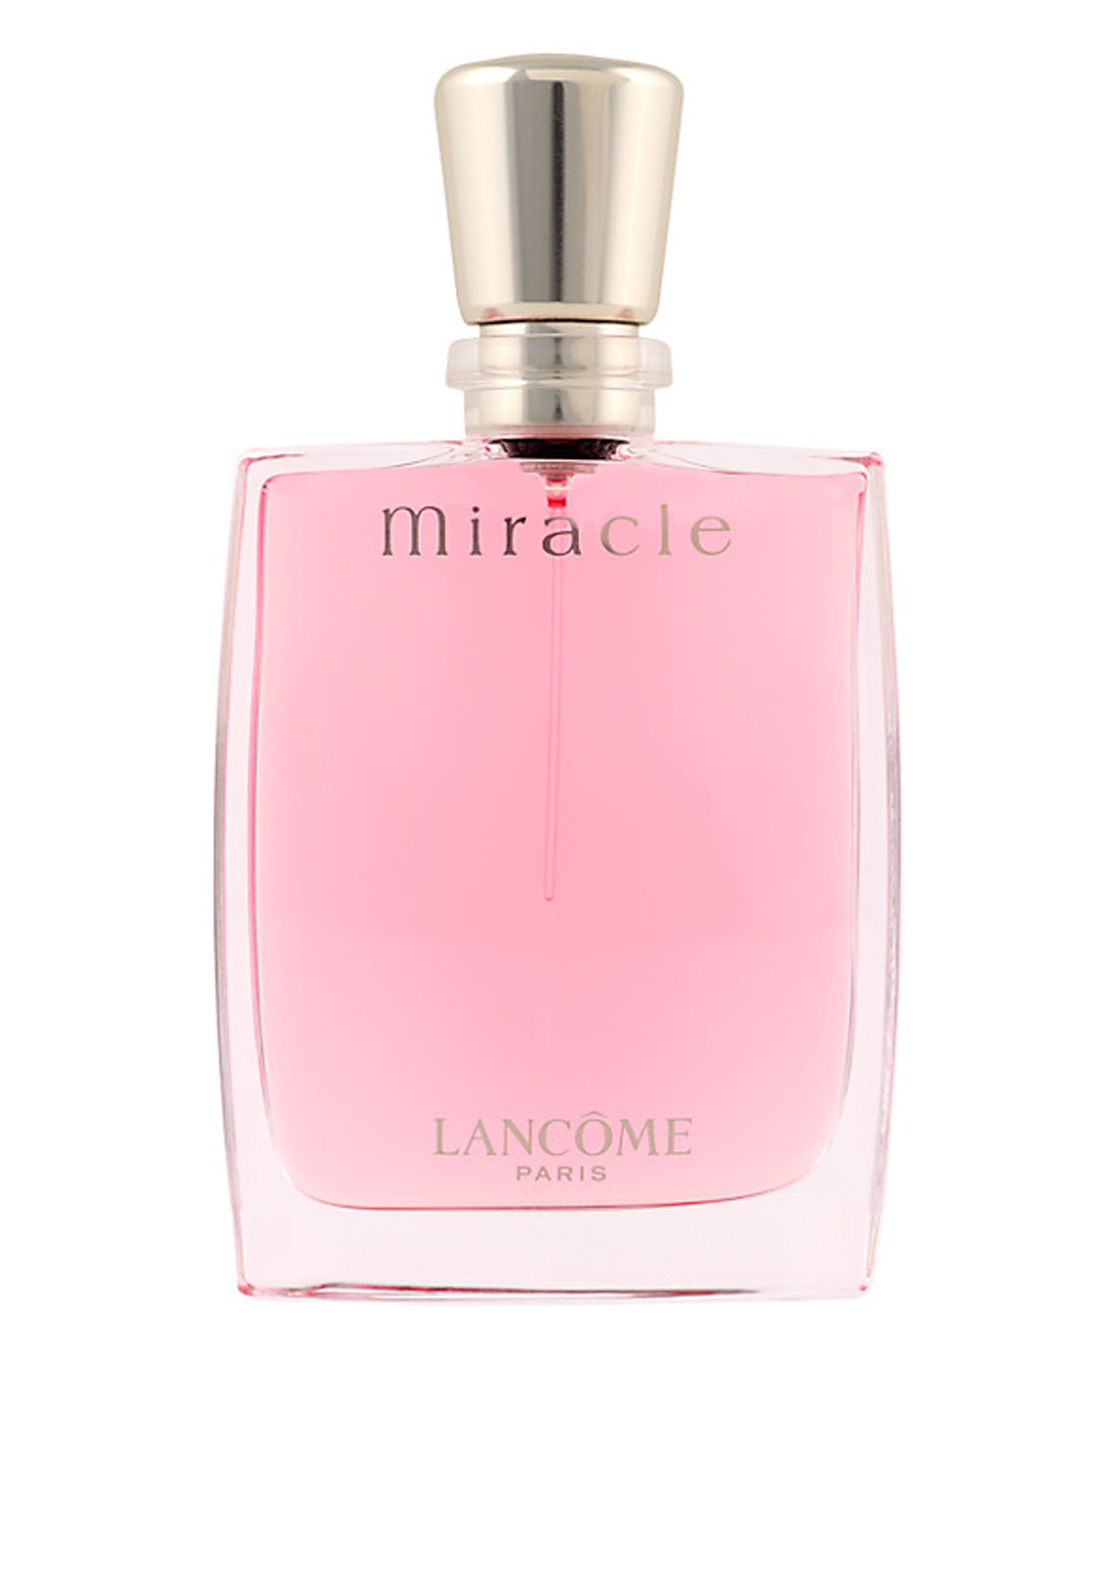 Lancome Miracle Eau De Parfum for Women